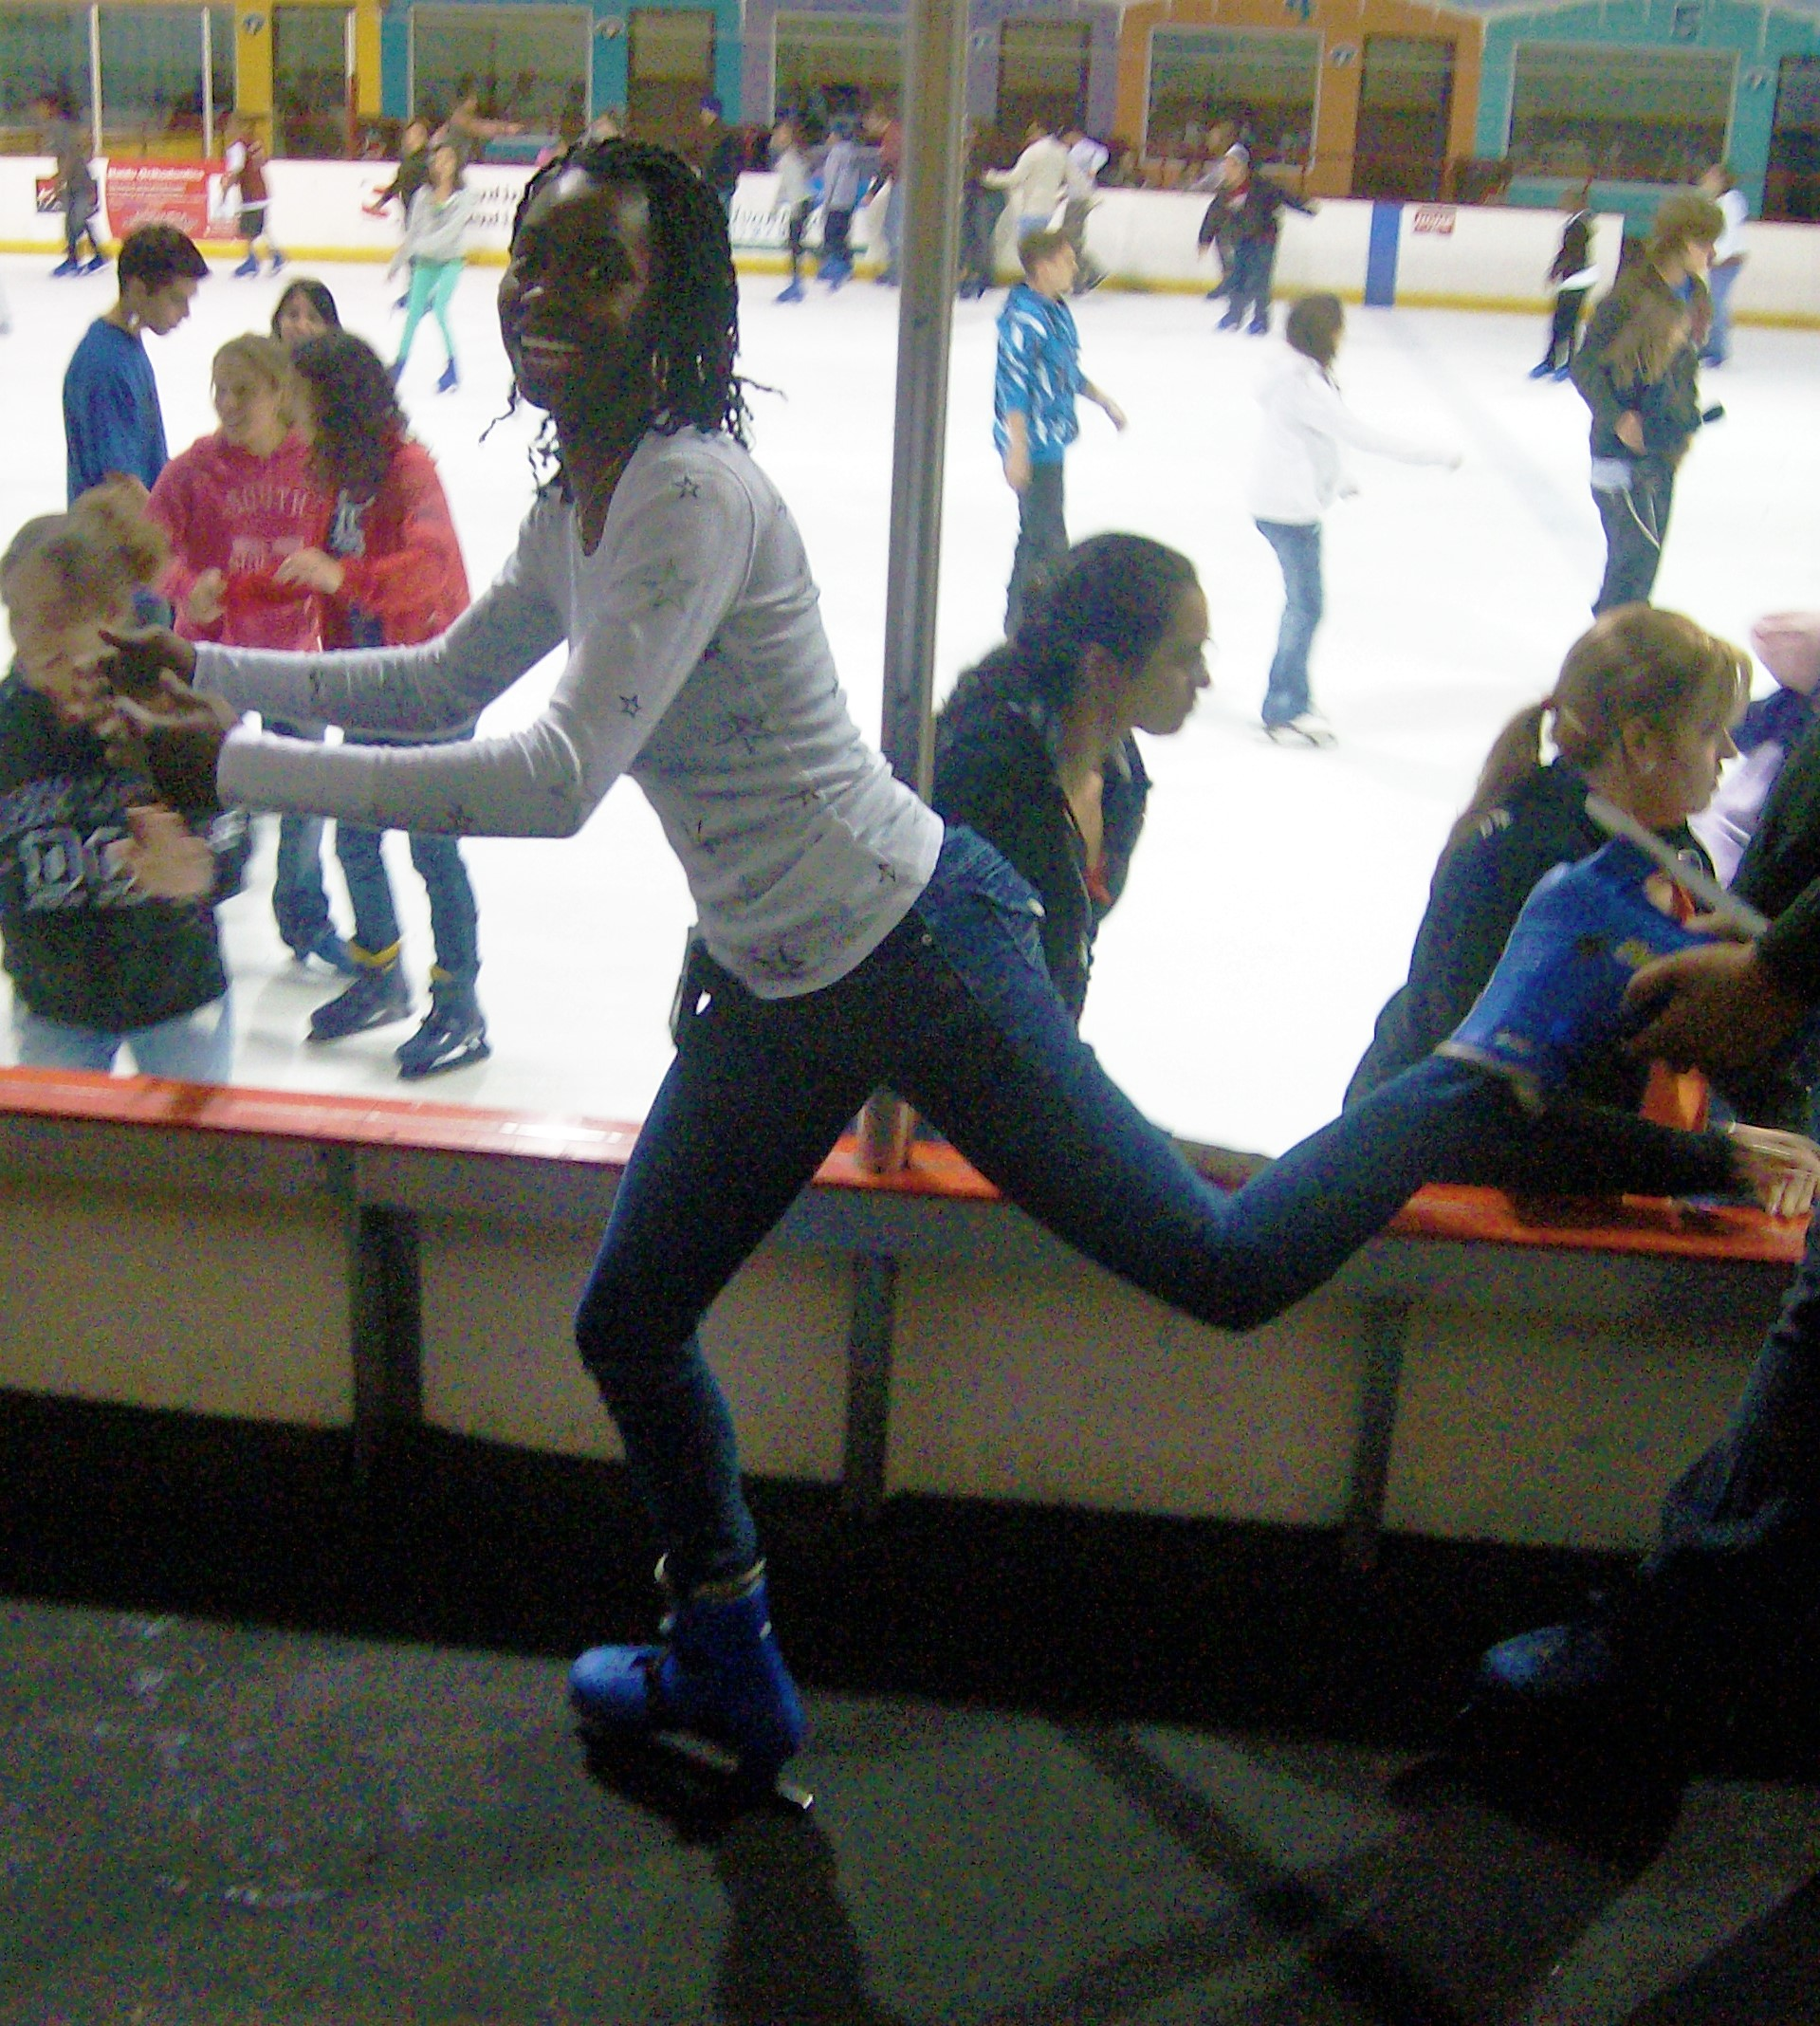 Freshmen year of college I was trying to figure out life and how to be a figure skater (December 2008)